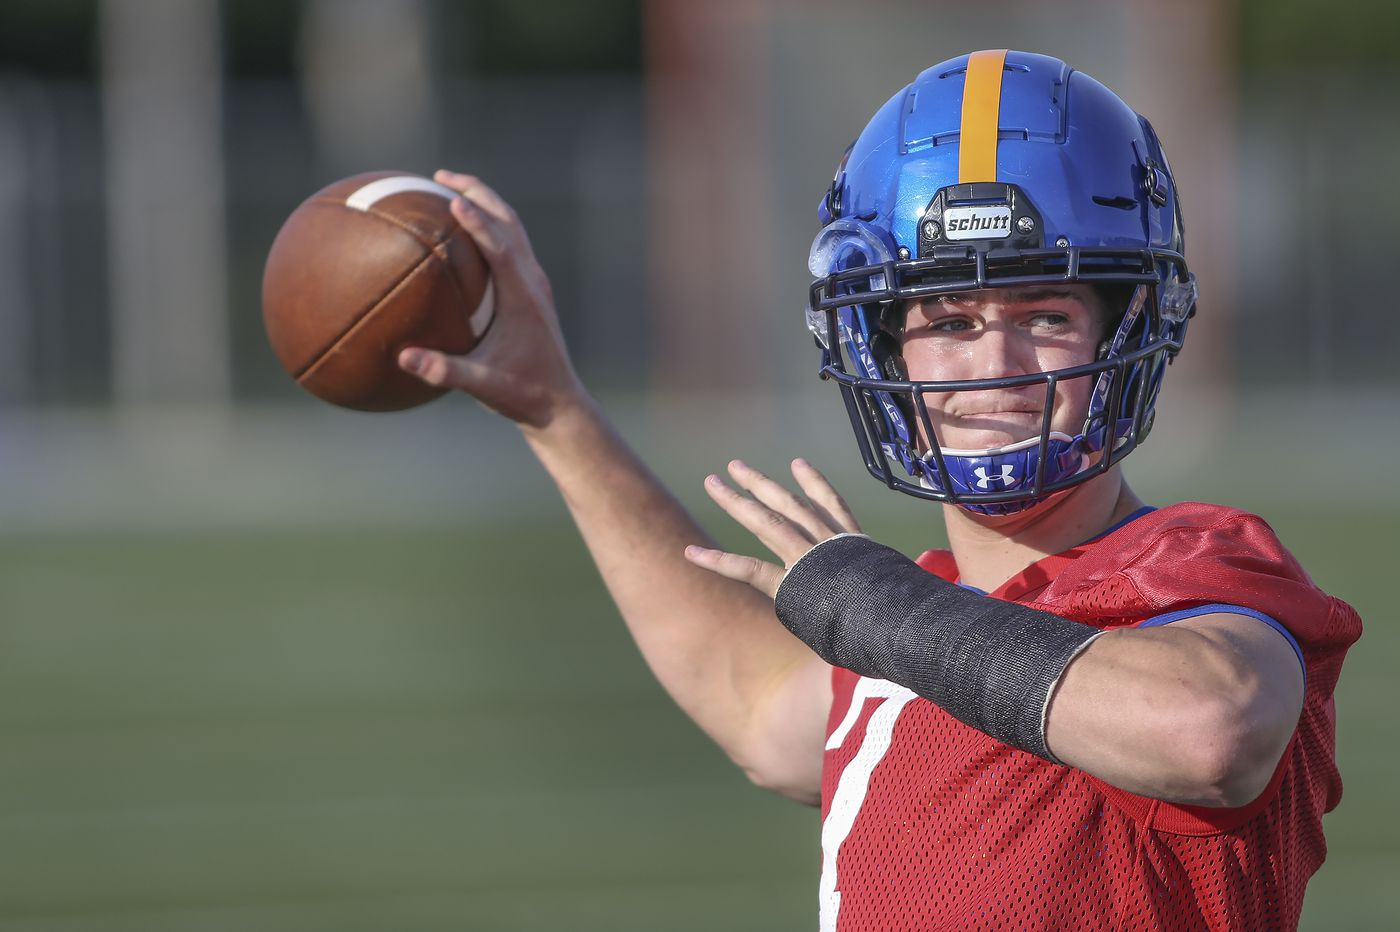 Football recruiting: Downingtown West's Will Howard finds 'home' with Carson Wentz's former coach